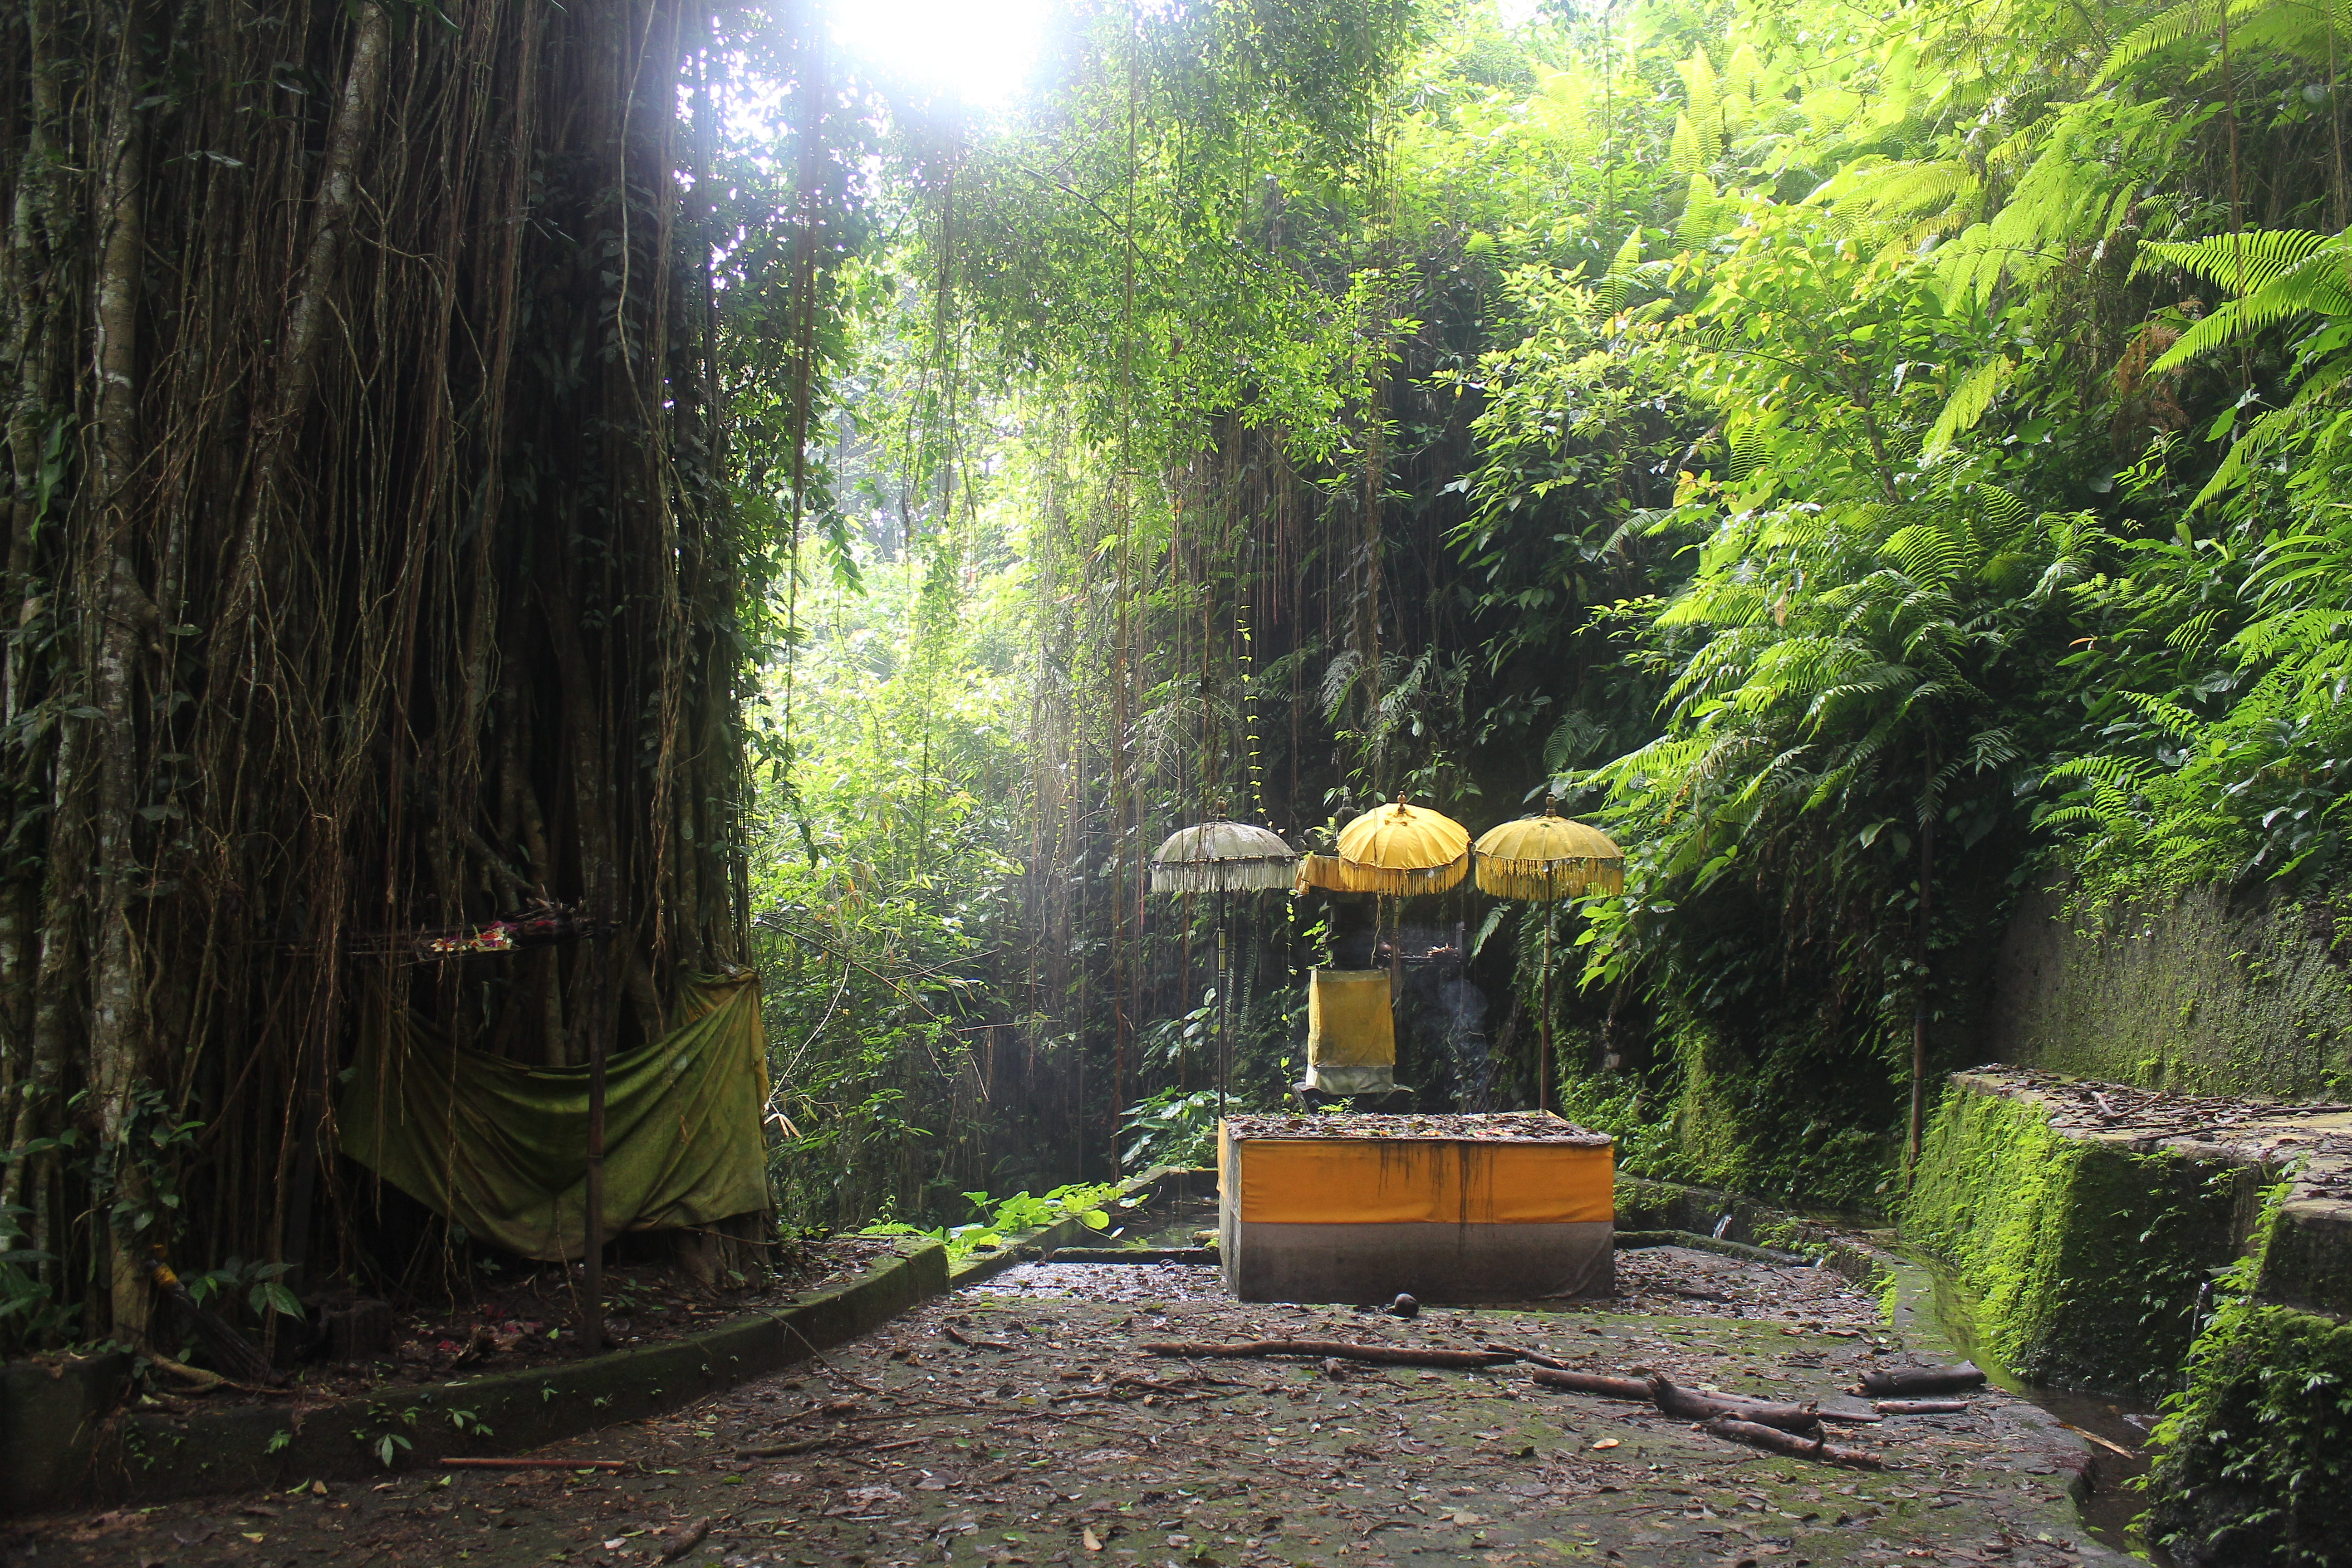 Yellow umbrellas over a platform shrine, set within dense jungle near a river